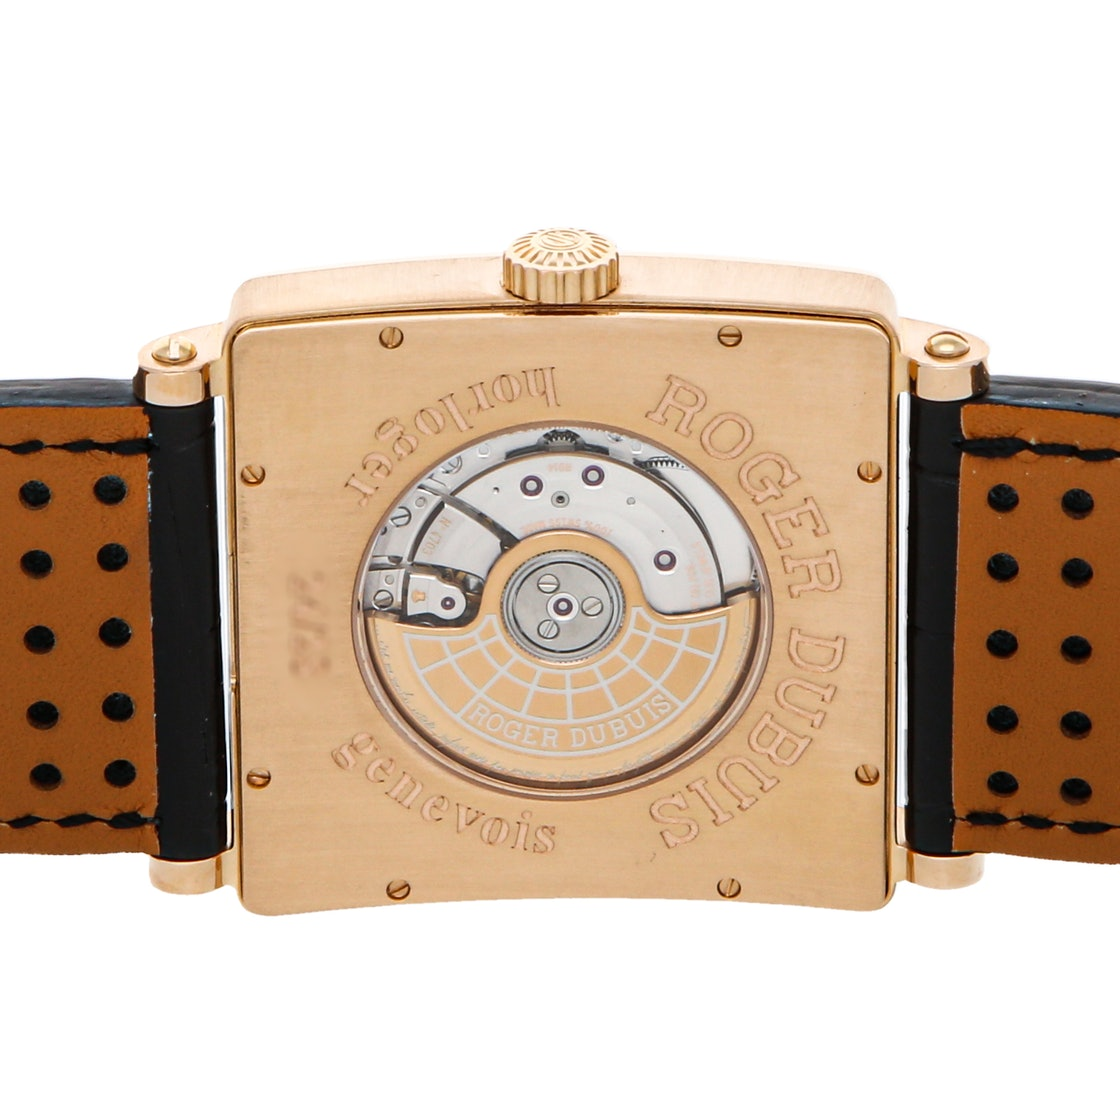 Roger Dubuis Golden Square DBGS0531